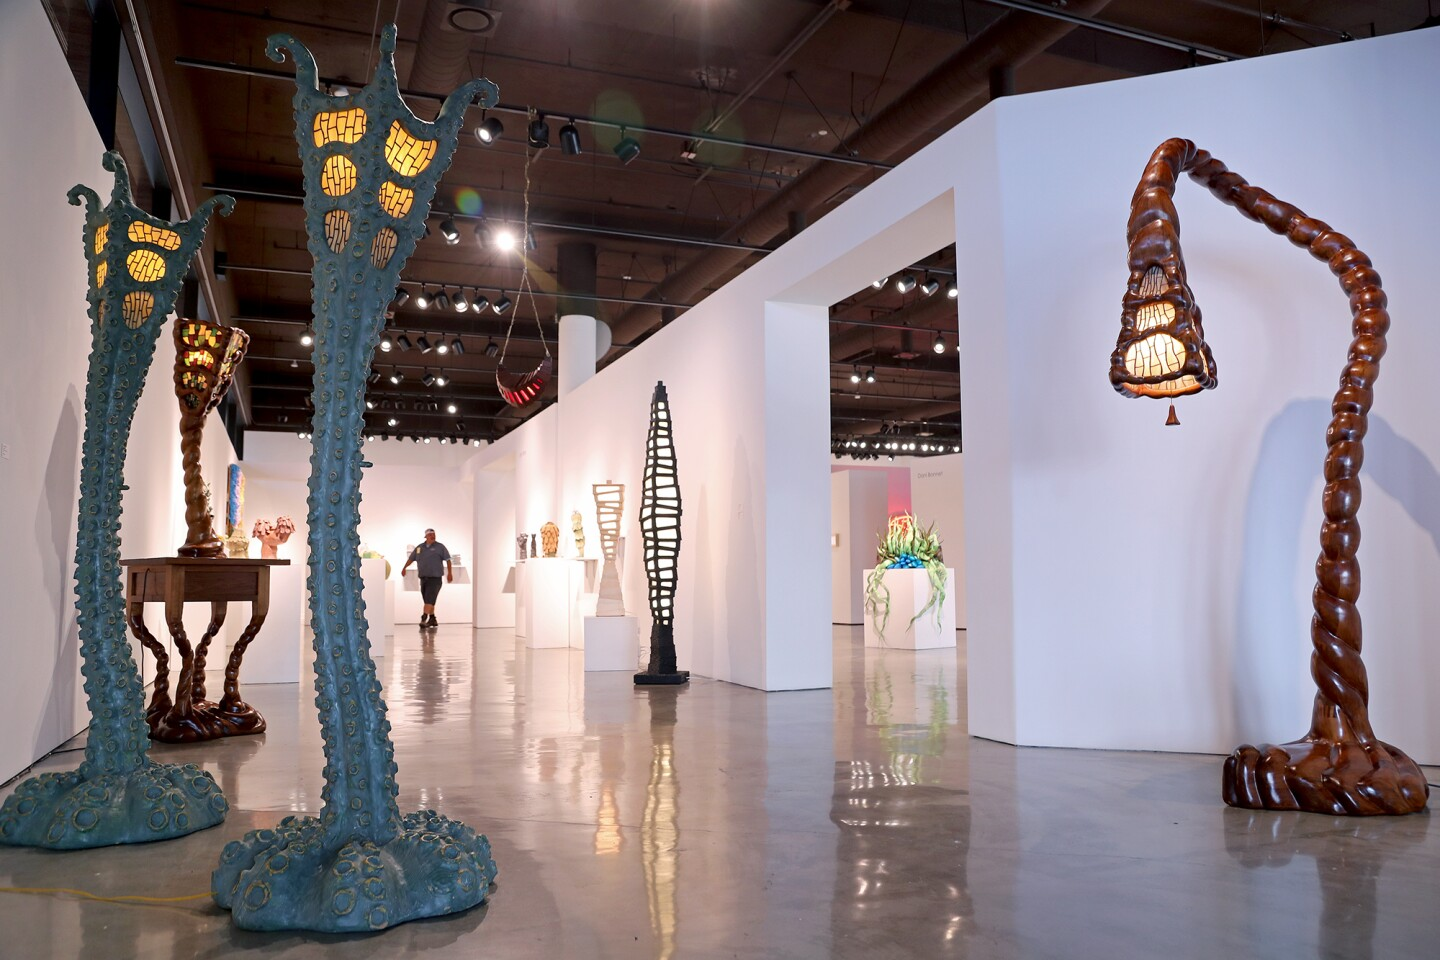 Octo Lamps, 2016, left, and Bent Lily Floor Lamp, 2007, far right, by Ashoke Chhabra.